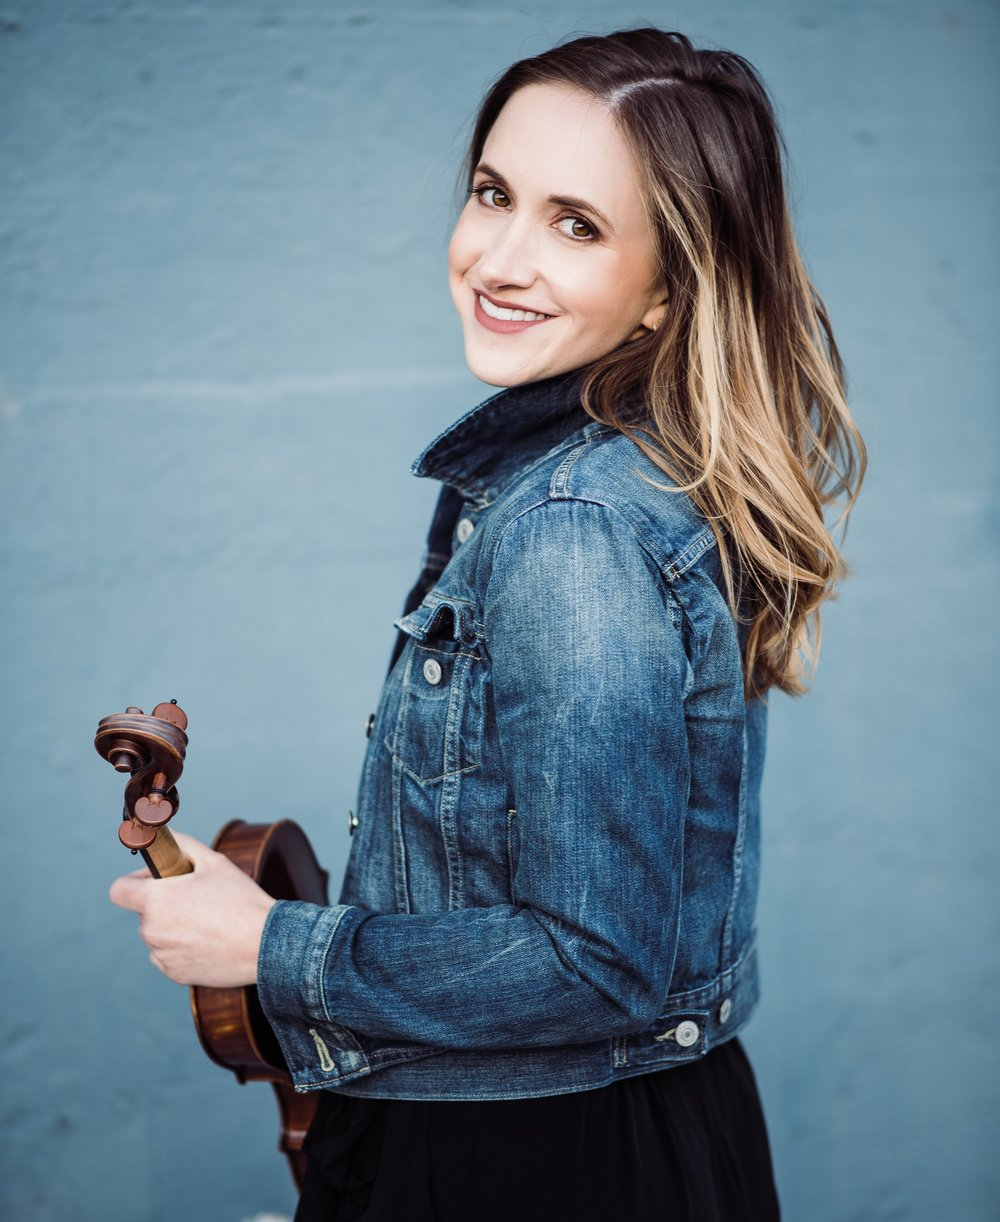 - Born in Philadelphia, Pennsylvania, violinist Emily Botel has performed throughout North America and Europe with the belief that music is a powerful tool to create connection and community. She is passionate about reaching new audiences through small ensemble and chamber orchestra performance. Emily is first violinist of the Amaranth Quartet, a founder and violinist with the unconducted, chamber orchestra One Found Sound, and a member of the San Francisco Chamber Orchestra. Emily has appeared as soloist with the San Francisco Academy Orchestra, has performed with many orchestras including California, Monterey, Marin, Oakland East Bay, Santa Rosa, and Stockton Symphonies. Emily has performed at various festivals such as Aldeburgh, Banff, Kronos, National Repertory Orchestra, New Music on the Point, Lake Tahoe, and Spoleto USA.Emily earned a Bachelor of Music degree from the Cleveland Institute of Music, with a minor in Psychology from Case Western Reserve University, a Master of Music degree from the San Francisco Conservatory of Music and an Artist Diploma in Orchestral Studies as a member of the San Francisco Academy Orchestra. She has studied with renowned pedagogues Linda Cerone and David Updegraff, award winning soloist and chamber musician Ian Swensen, San Francisco Symphony members Catherine Van Hoesen, David Chernyavsky, and Melissa Kleinbart and baroque violinists, Julie Andrijeski and Elizabeth Blumenstock.As a chamber musician, her work has taken her to a variety of venues including SFJAZZ, Herbst Theater, Freight And Salvage, Legion of Honor, and the DeYoung Museum. With a passion for early music, Emily was a founding member of the baroque ensemble MUSA and has performed with the San Francisco Bach Choir, the American Bach Soloists Academy, the Santa Cruz Baroque Festival, Berkeley Fringe Baroque Festival and Early Music America's Young Performers Festival.In addition to her classical work, Emily has collaborated and performed with various popular and indie artists such as Kygo, Third Eye Blind, Journey, Geographer, Weezer, Zola Jesus, Diana Gameros, Magik*Magik Orchestra and has performed at iconic venues such as The Fillmore, The Greek Theater, The Fox Oakland, Masonic Lodge at Hollywood Forever and on festival stages such as the Hardly-Strictly Bluegrass Festival and the Stern Grove Festival. Emily frequently spends many hours in recording studios, appearing on a wide range of albums and on numerous feature film scores.Emily is a dedicated educator. She has been a violin teacher at the Enriching Lives through Music program in San Rafael, a teaching fellow in Belize with the organization MusAid, a chamber music and sectional coach for the Palo Alto Chamber Orchestra, and on chamber music faculty for the String Quartet Camp at the San Francisco Community Music Center. Emily is a registered Suzuki teacher and has a private teaching studio in San Francisco.